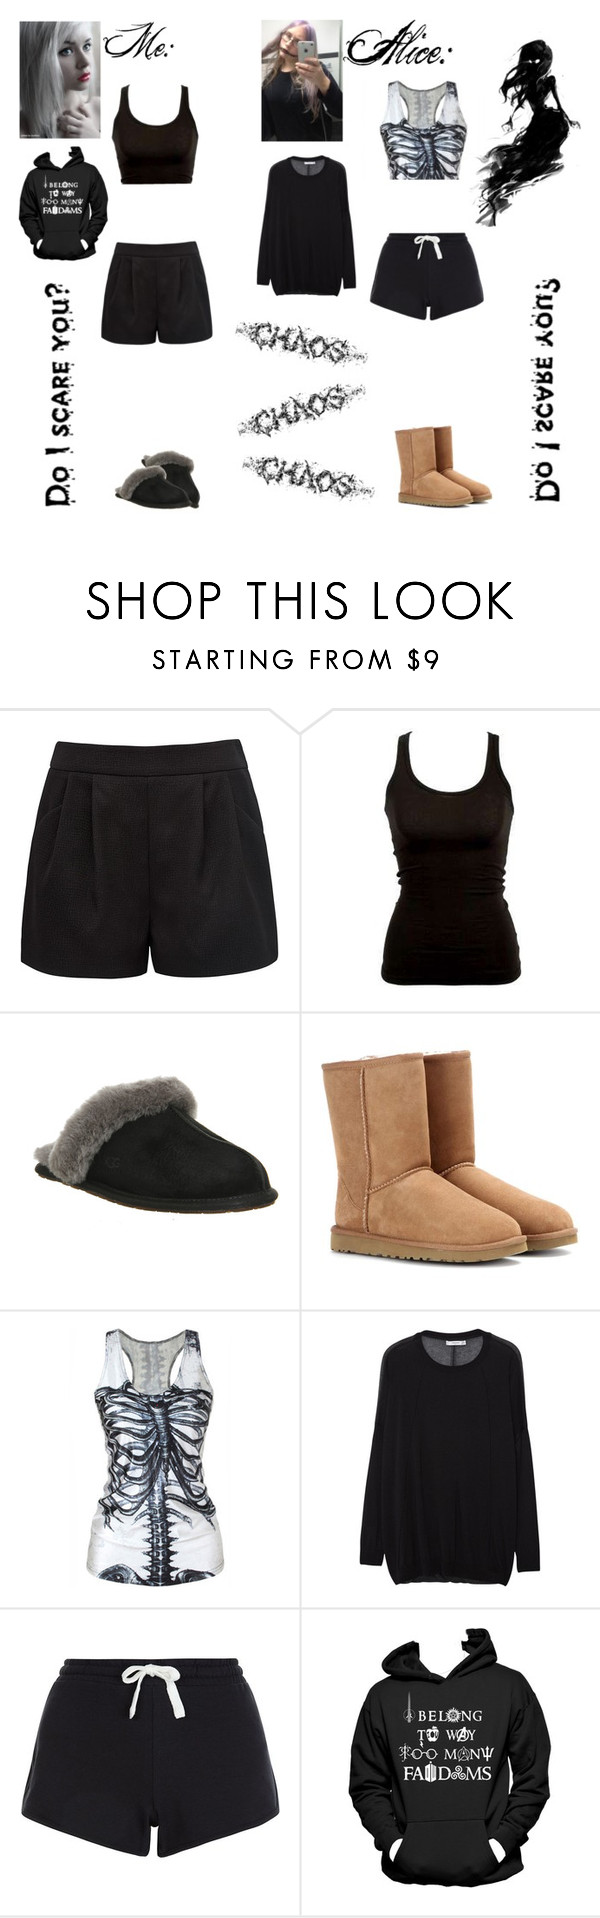 """""""Short story for @insane-alice-madness (RTD)"""" by jeanie-boyd ❤ liked on Polyvore featuring Forever New, UGG Australia, MANGO, New Look and Identity"""